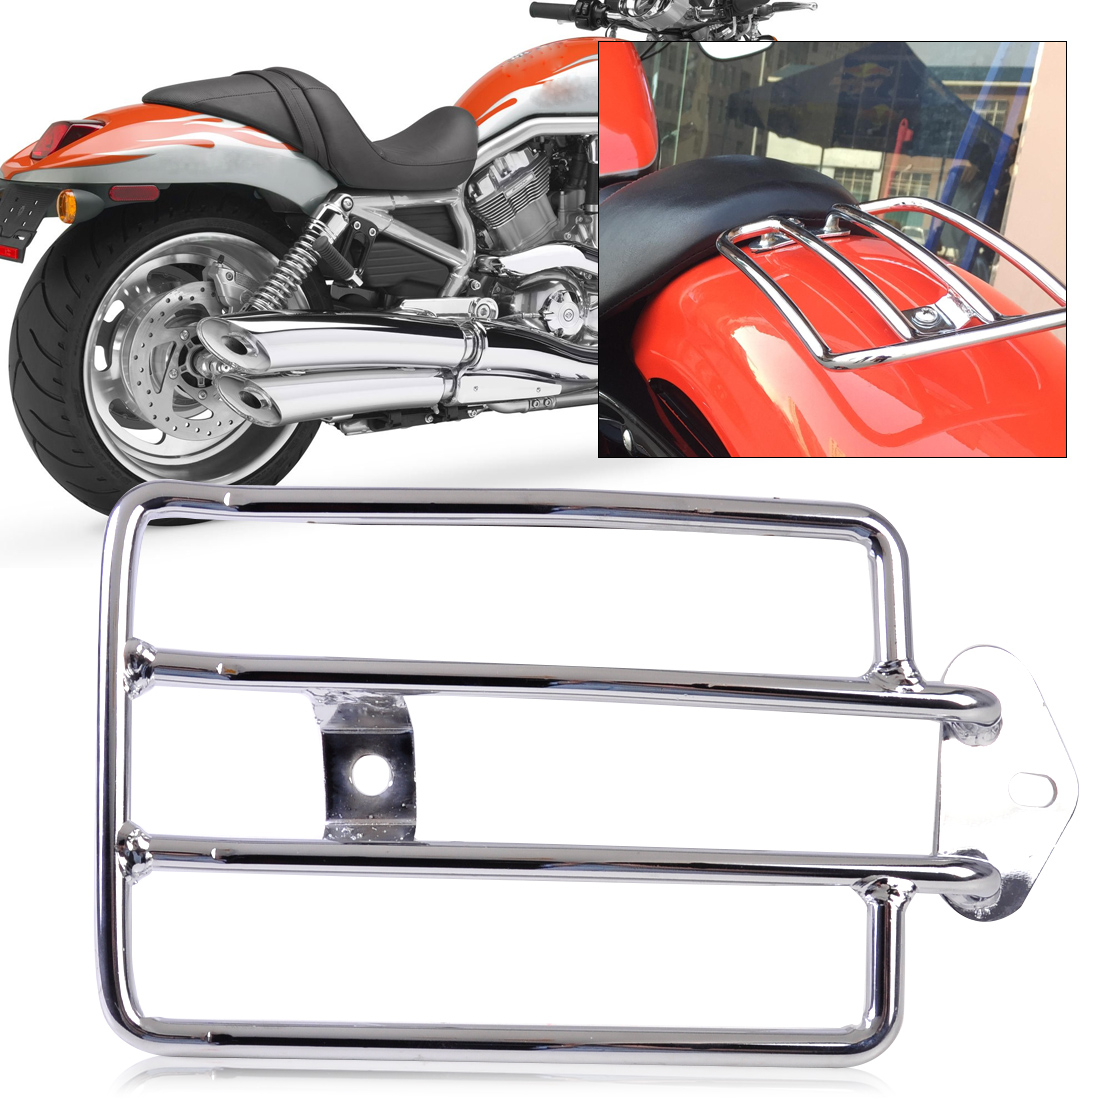 DWCX Motorcycle Silver Rear Seat Luggage Support Cargo Shelf Rack Fit for Harley Davidson Sportster 1200 Sportster 883 motorbike black solo seat luggage shelf frame rack for harley sportster xl 883 1200 85 03